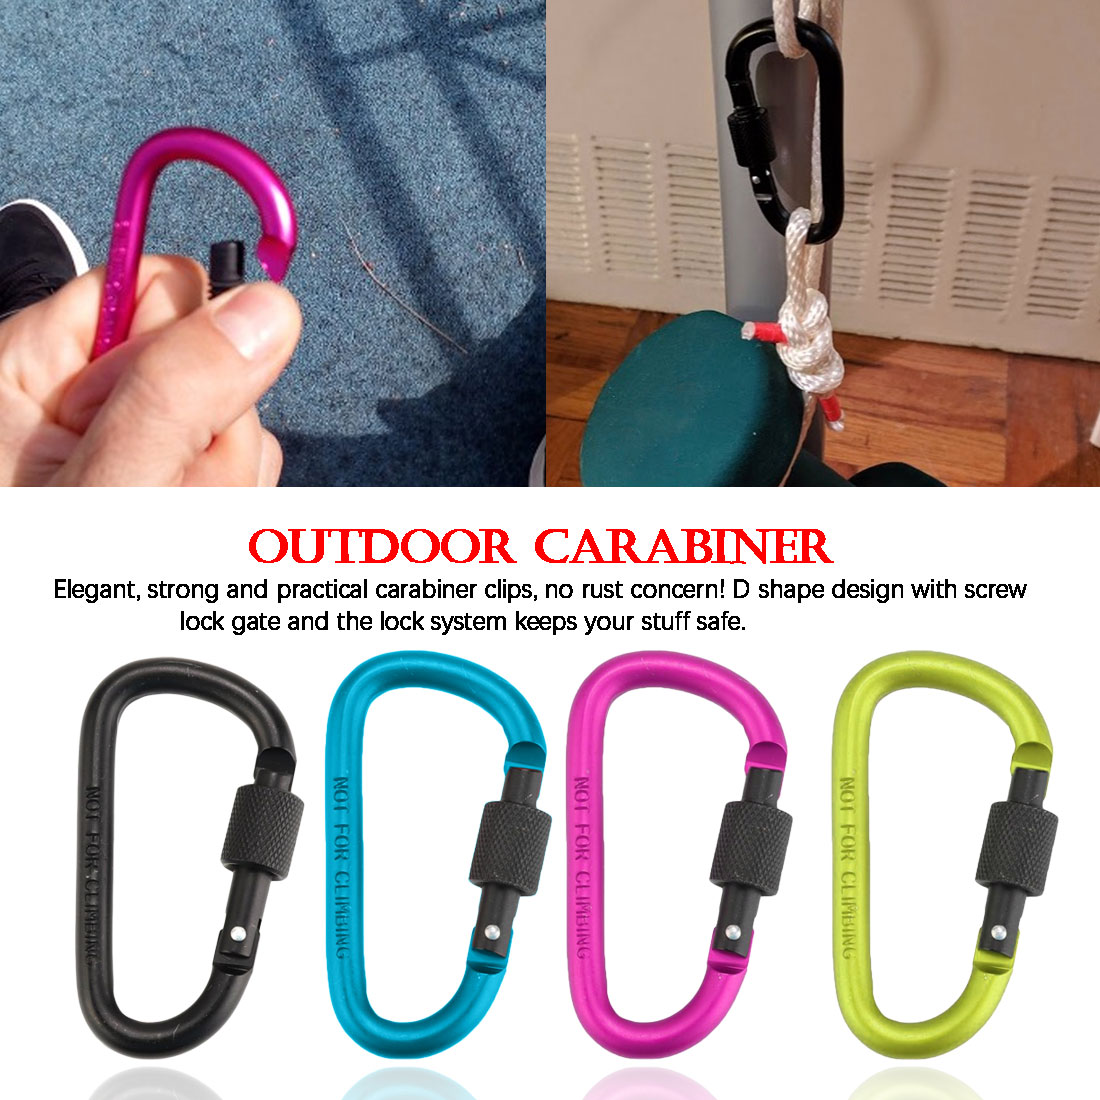 8cm Carabiner Climbing Locking Buckle Hanging Aluminum Nut Backpack Buckle Type D Quick Draw Carabiner Buckle outdoor carabiner